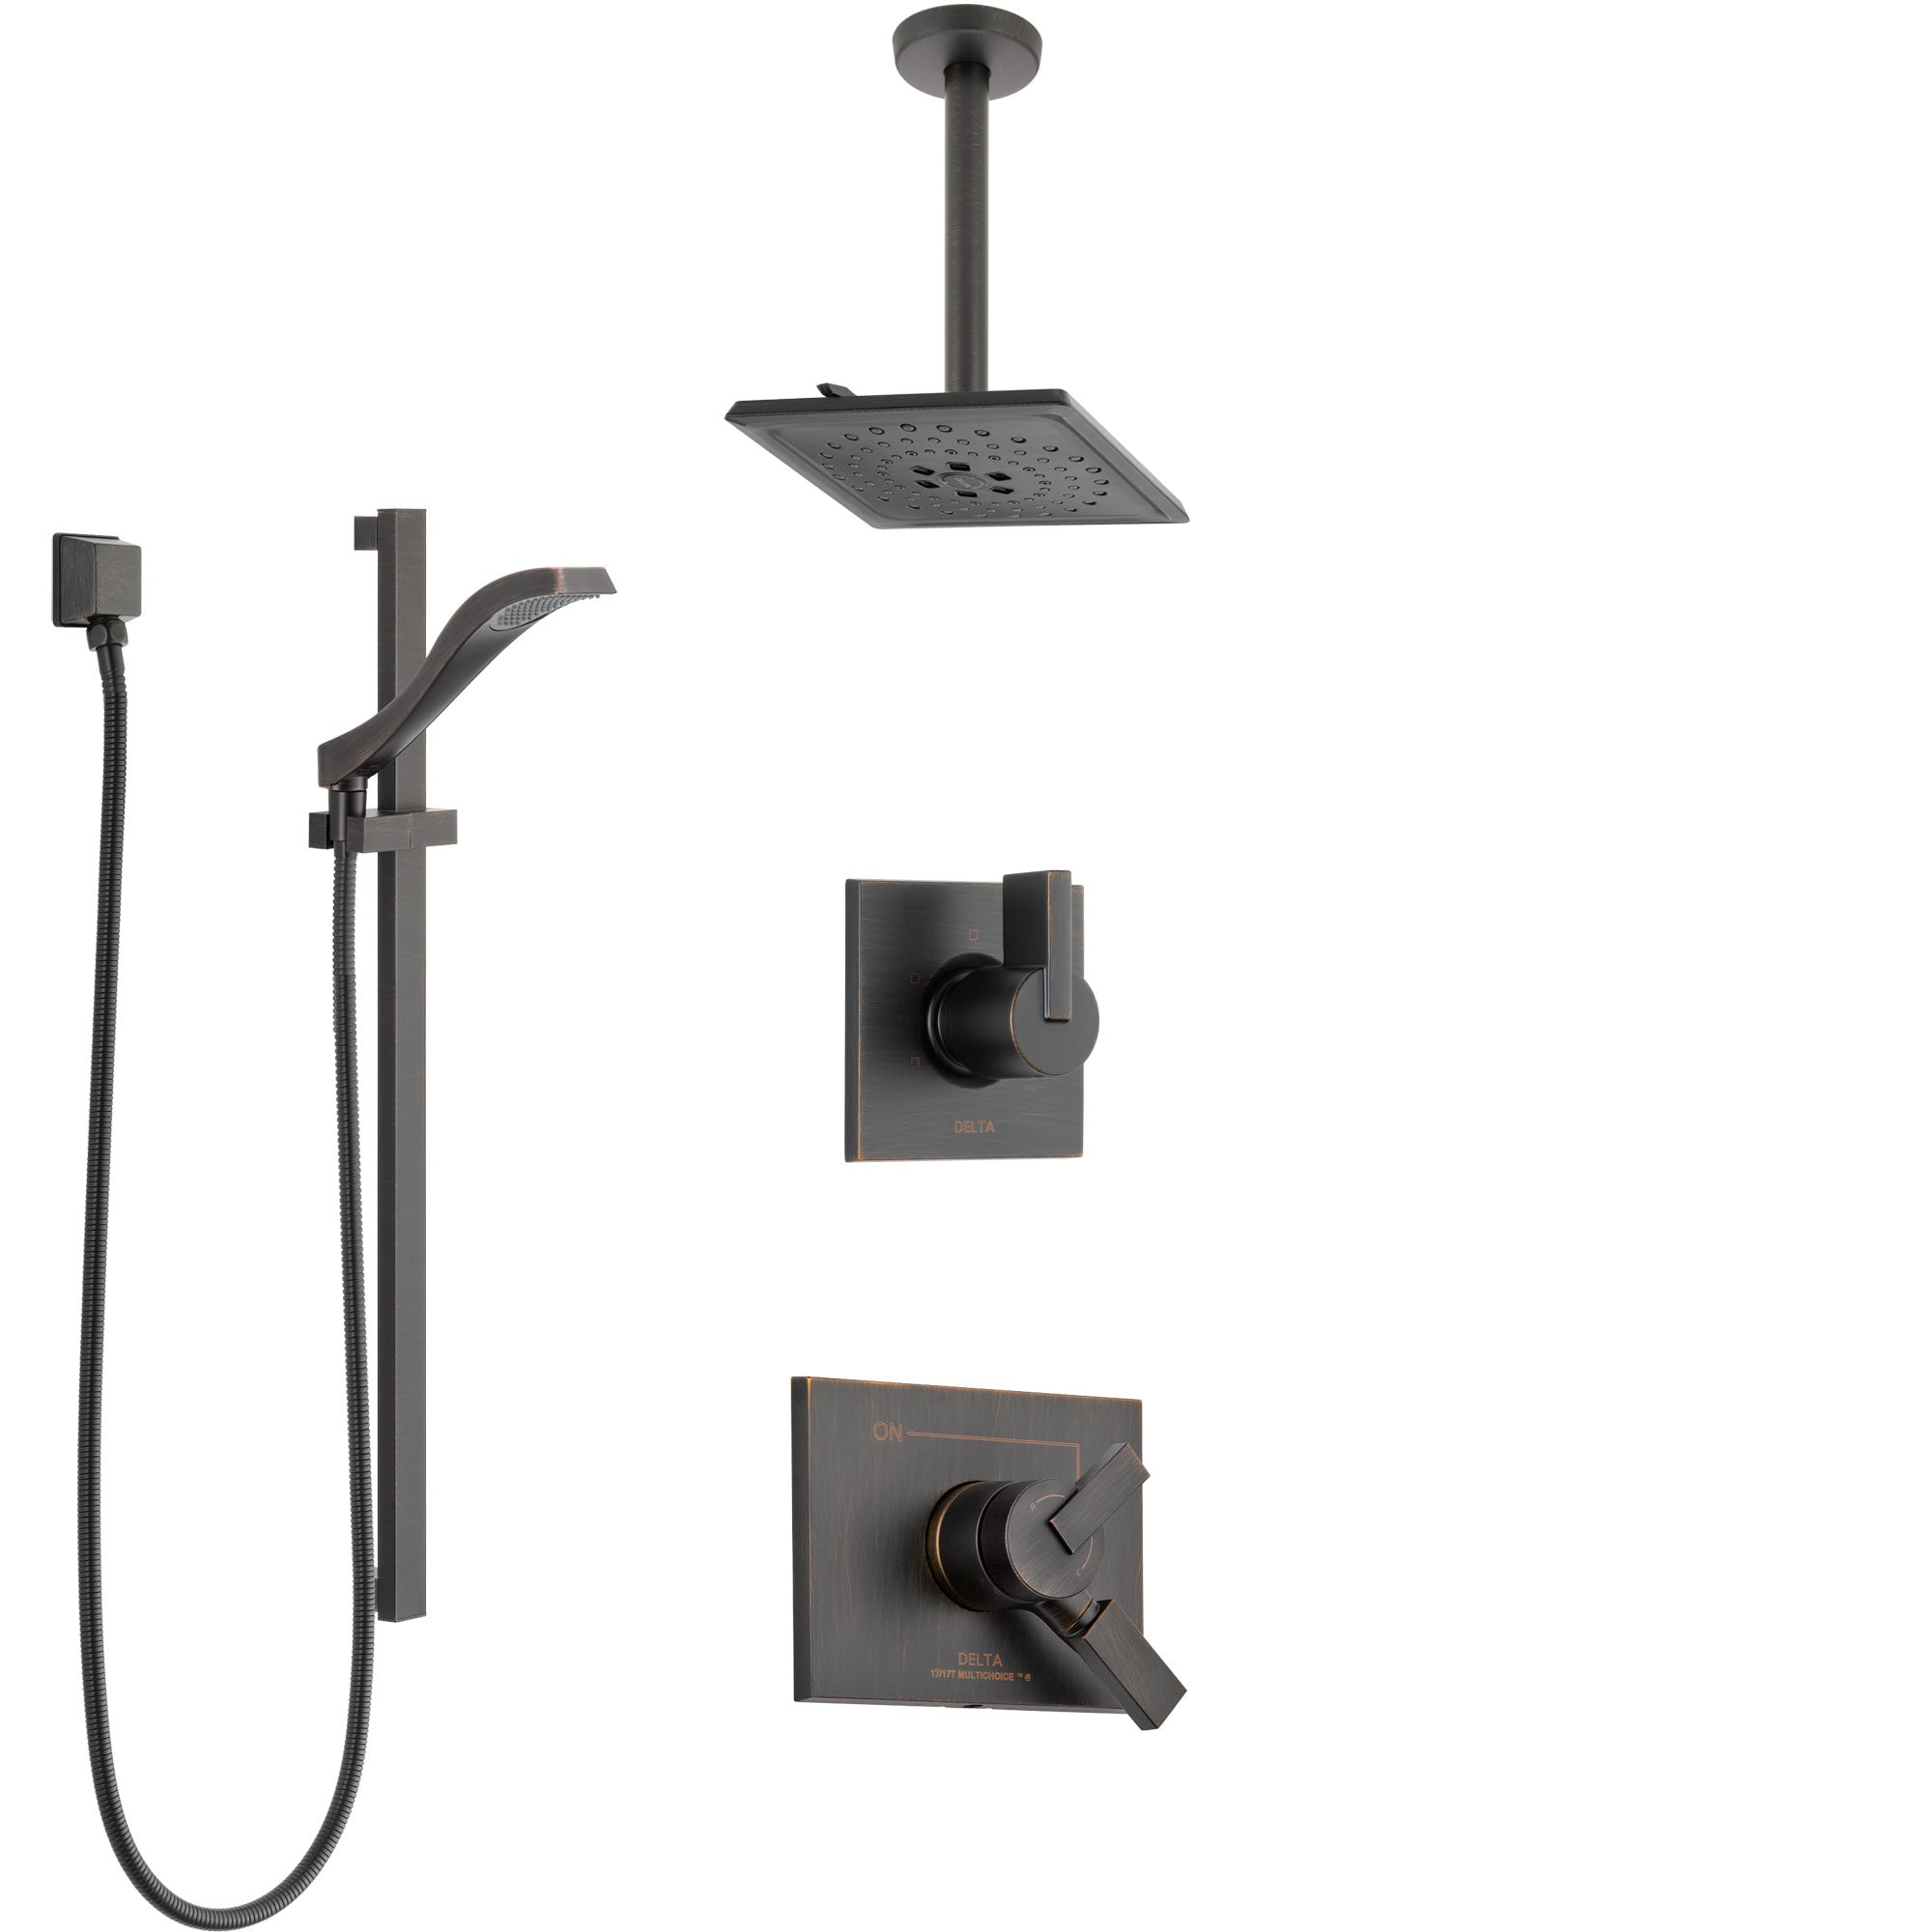 Delta Vero Venetian Bronze Shower System with Dual Control Handle, Diverter, Ceiling Mount Showerhead, and Hand Shower with Slidebar SS1753RB6